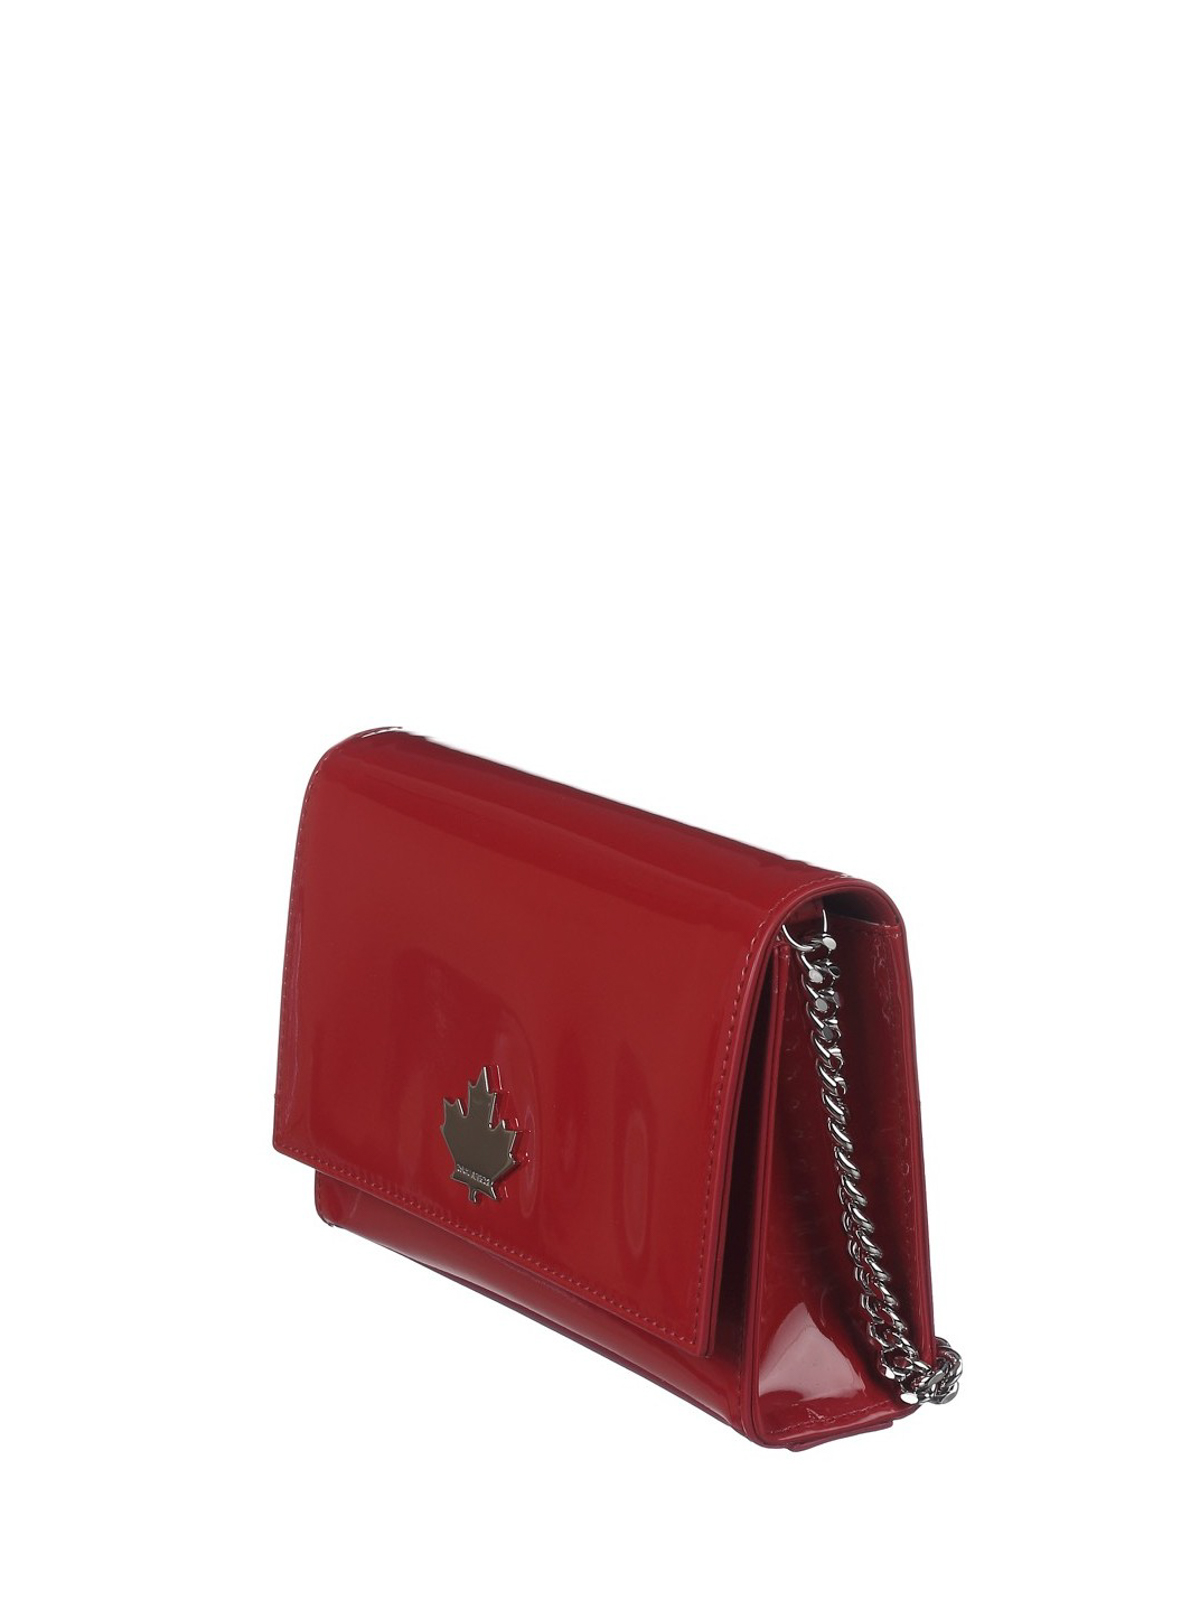 Dsquared2 50s Rock Disco red crossbody